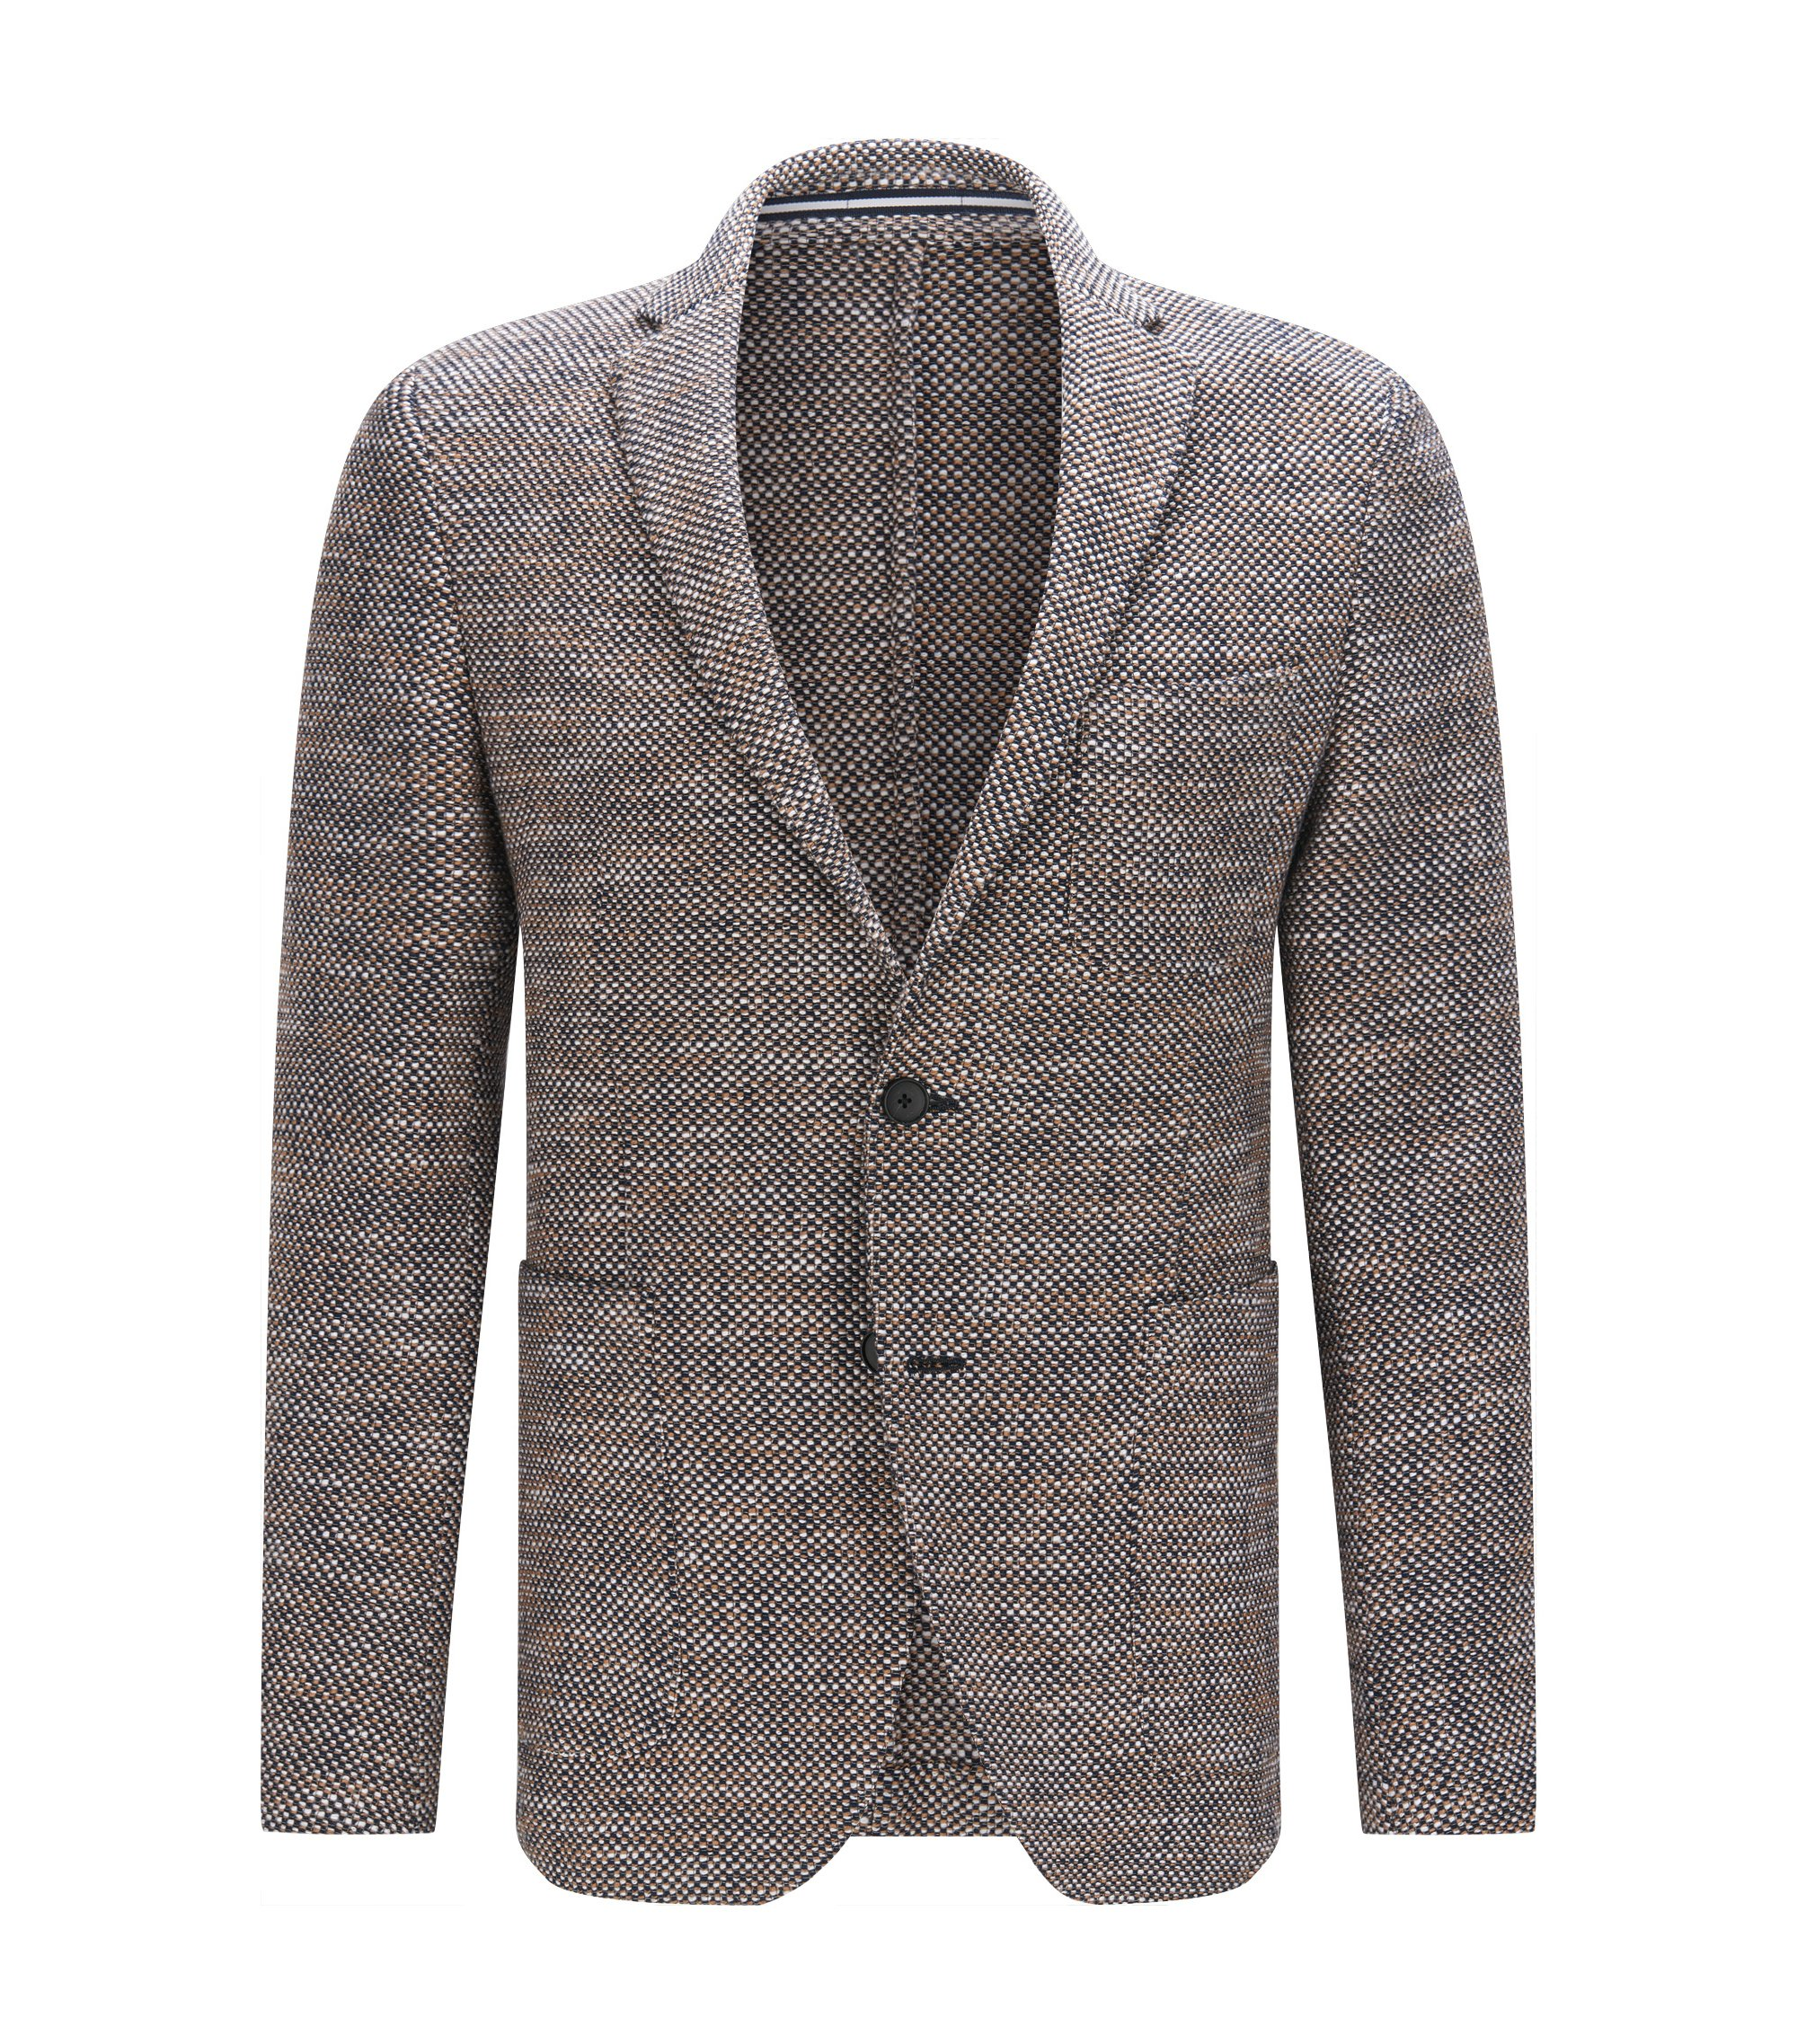 Cotton Blend Tweed Sport Coat, Slim Fit | Newon, Dark Blue